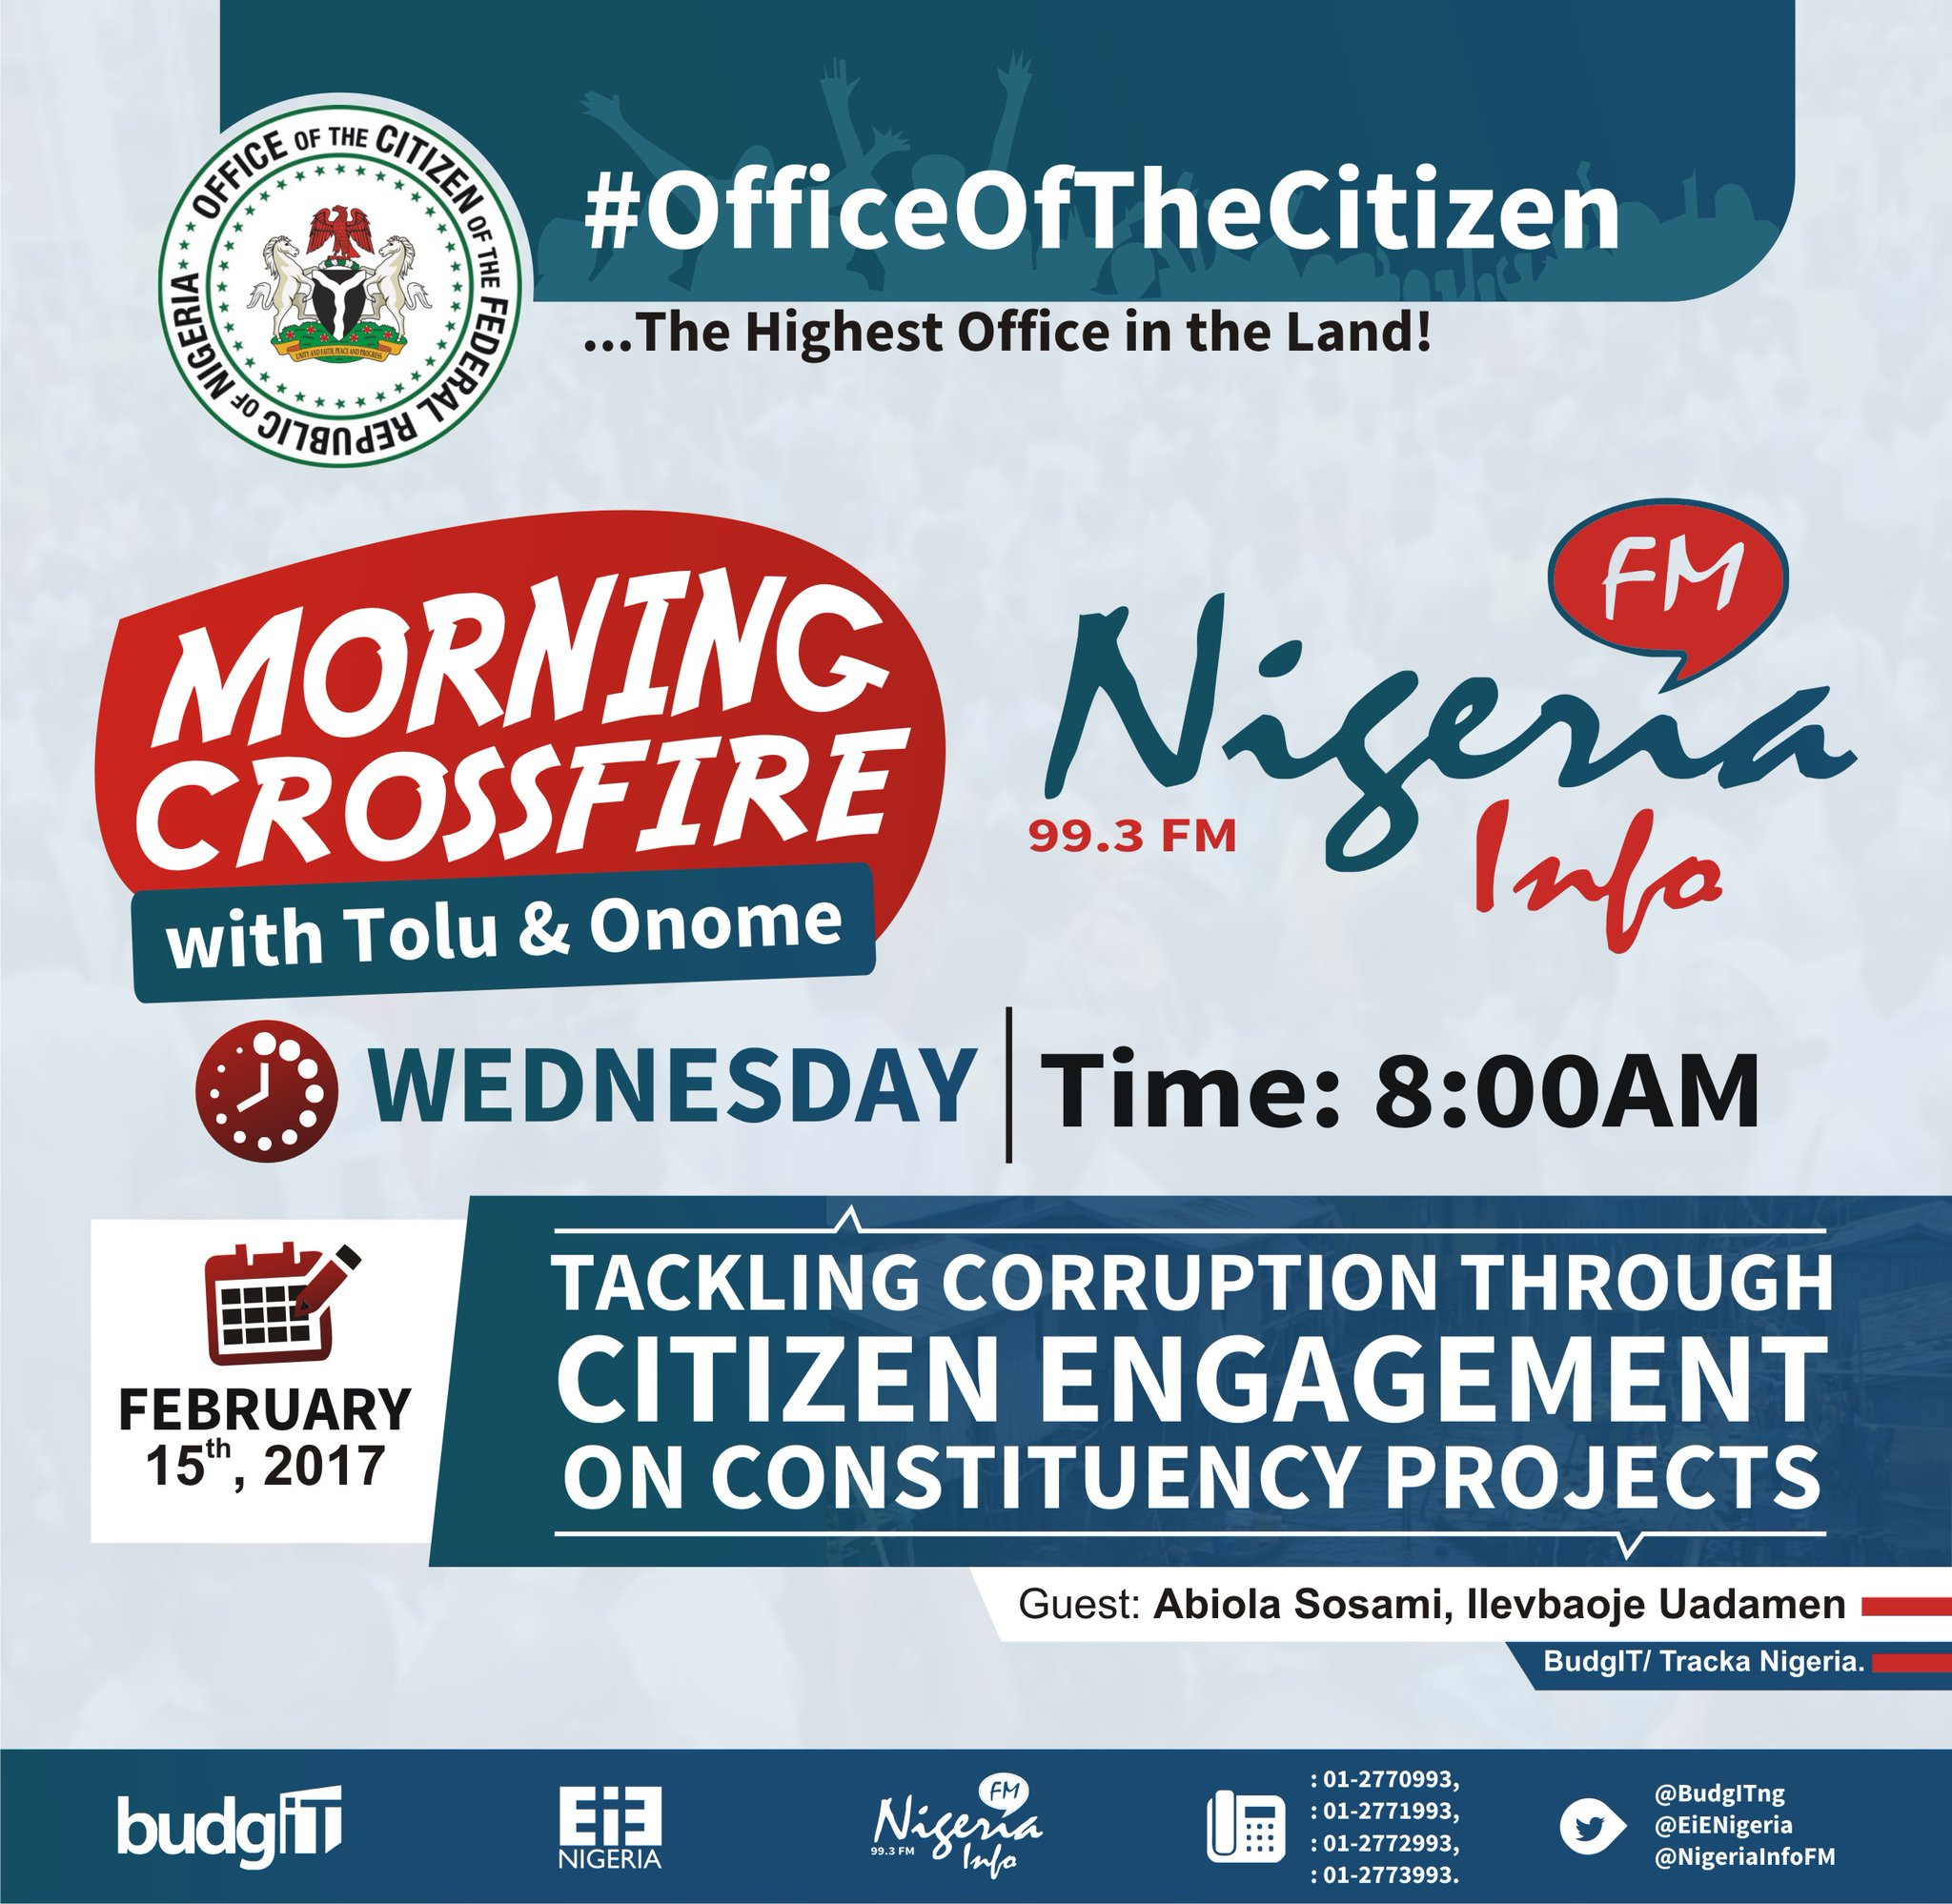 Thumbnail for #OfficeOfTheCitizen - Tackling Corruption Through Citizen Engagement in Constituency Projects